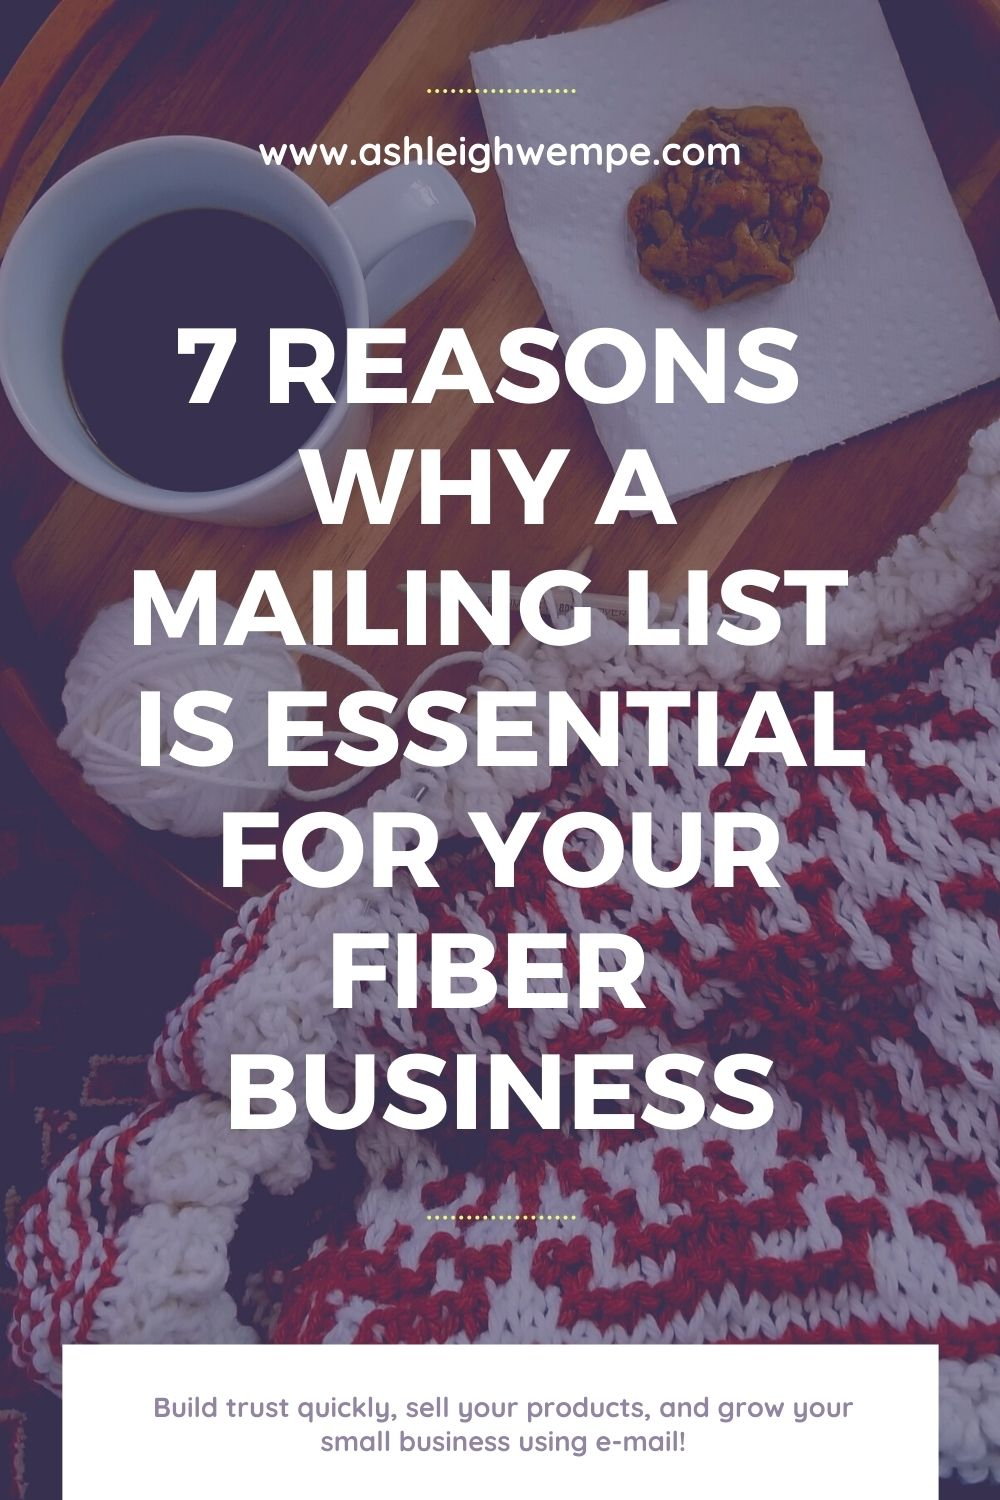 Do you really need a mailing list for your fiber business?